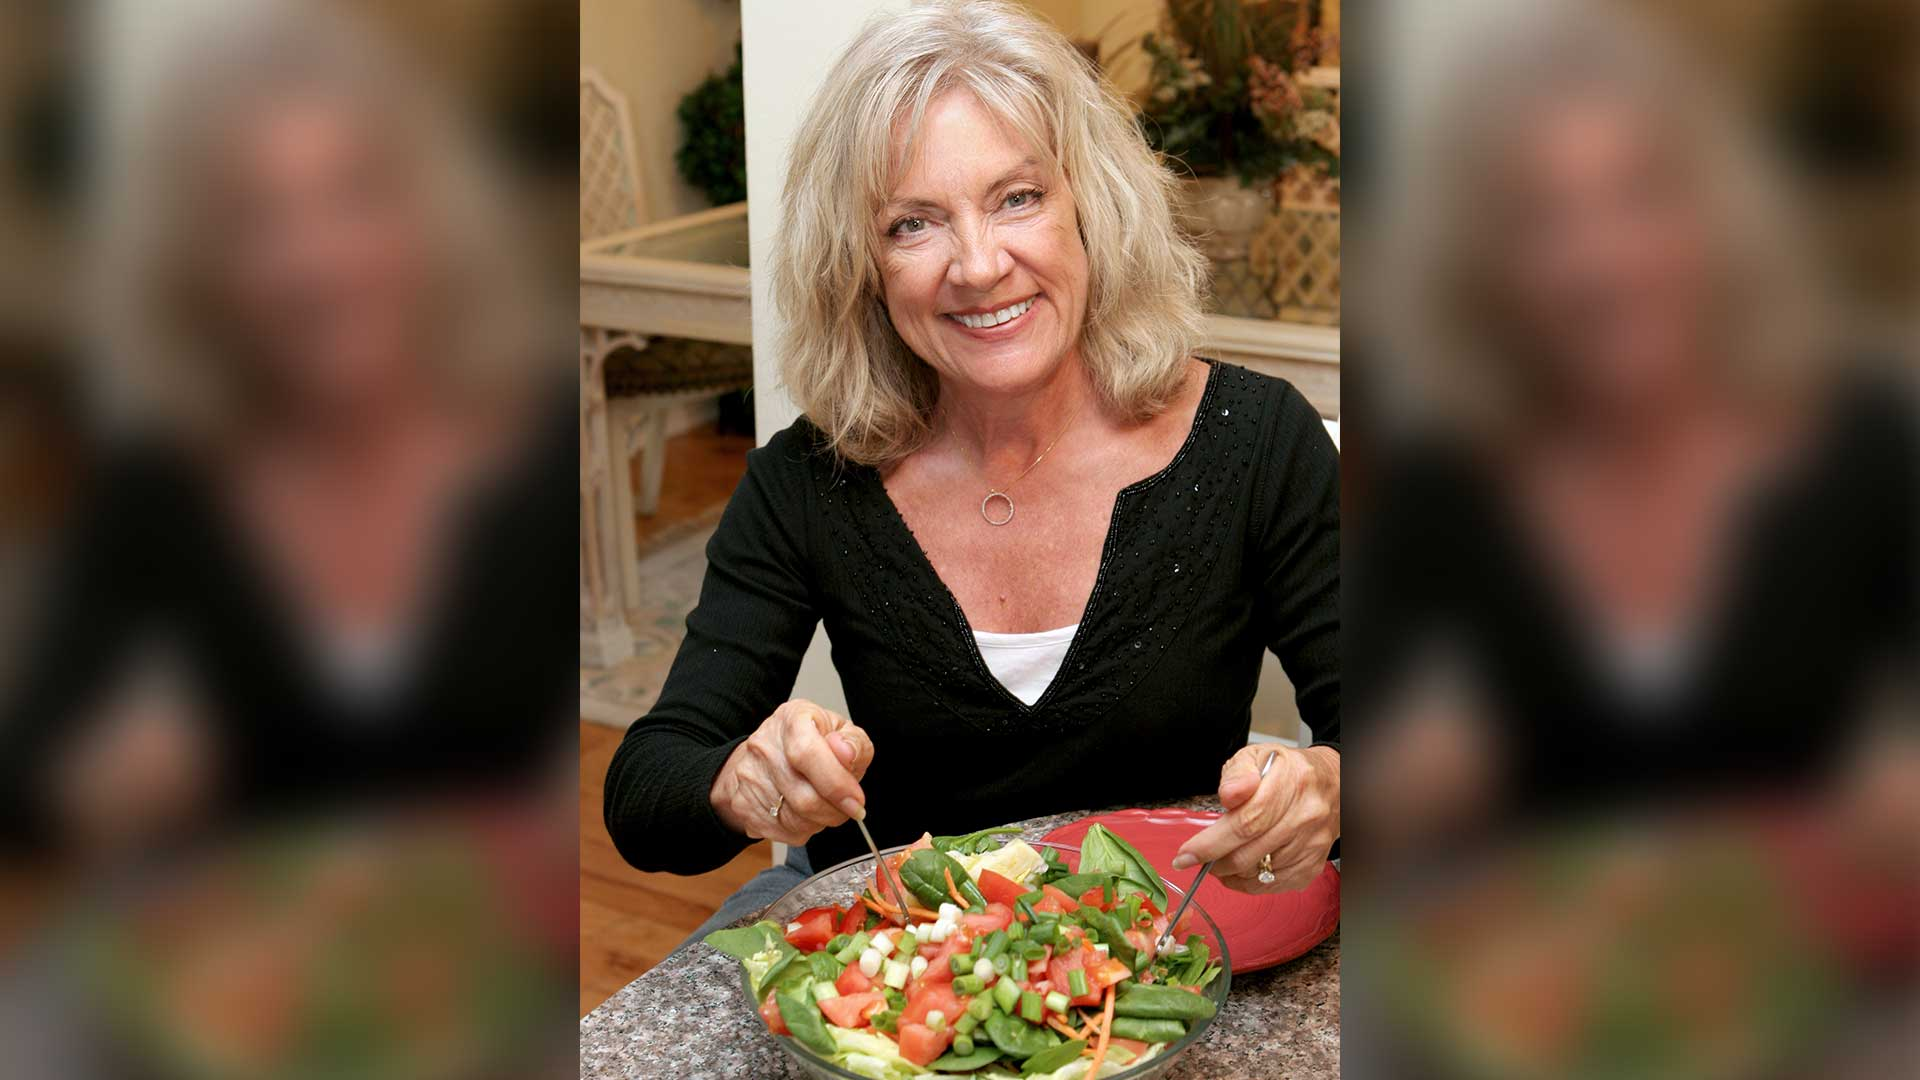 Local-Mom-Reports-That-Salad-Dressing-Has-A-Little-Bit-of-a-Kick-To-It.jpg